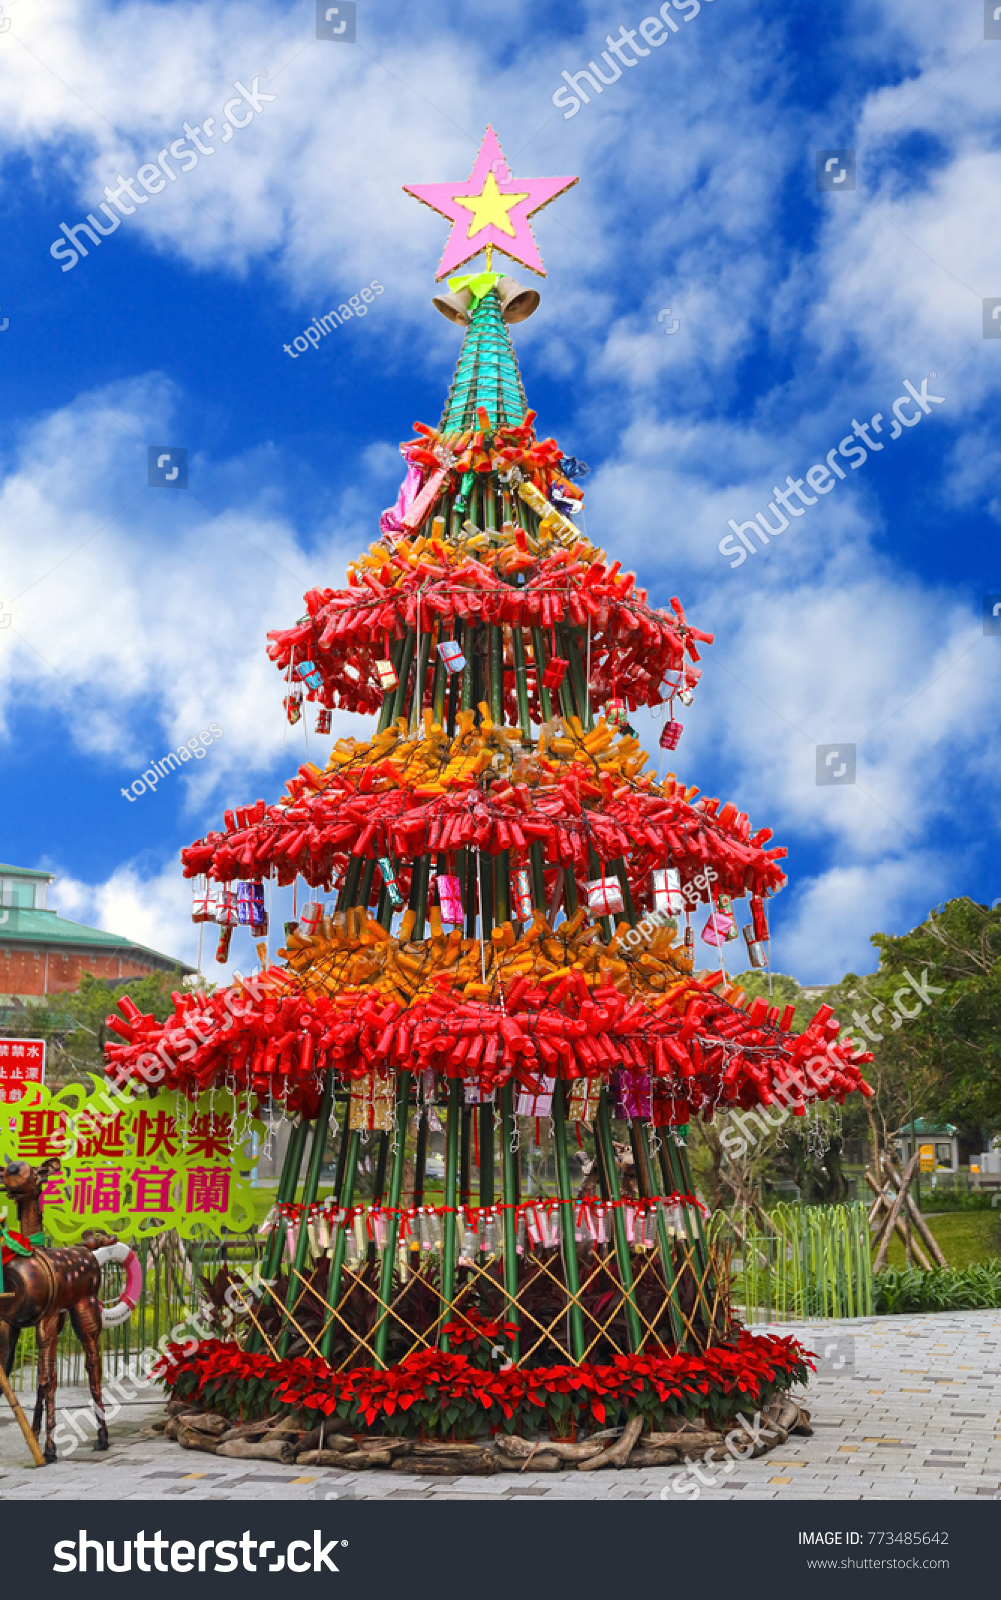 pet bottle recycling christmas tree translation meaning merry christmas - What Is The Meaning Of The Christmas Tree